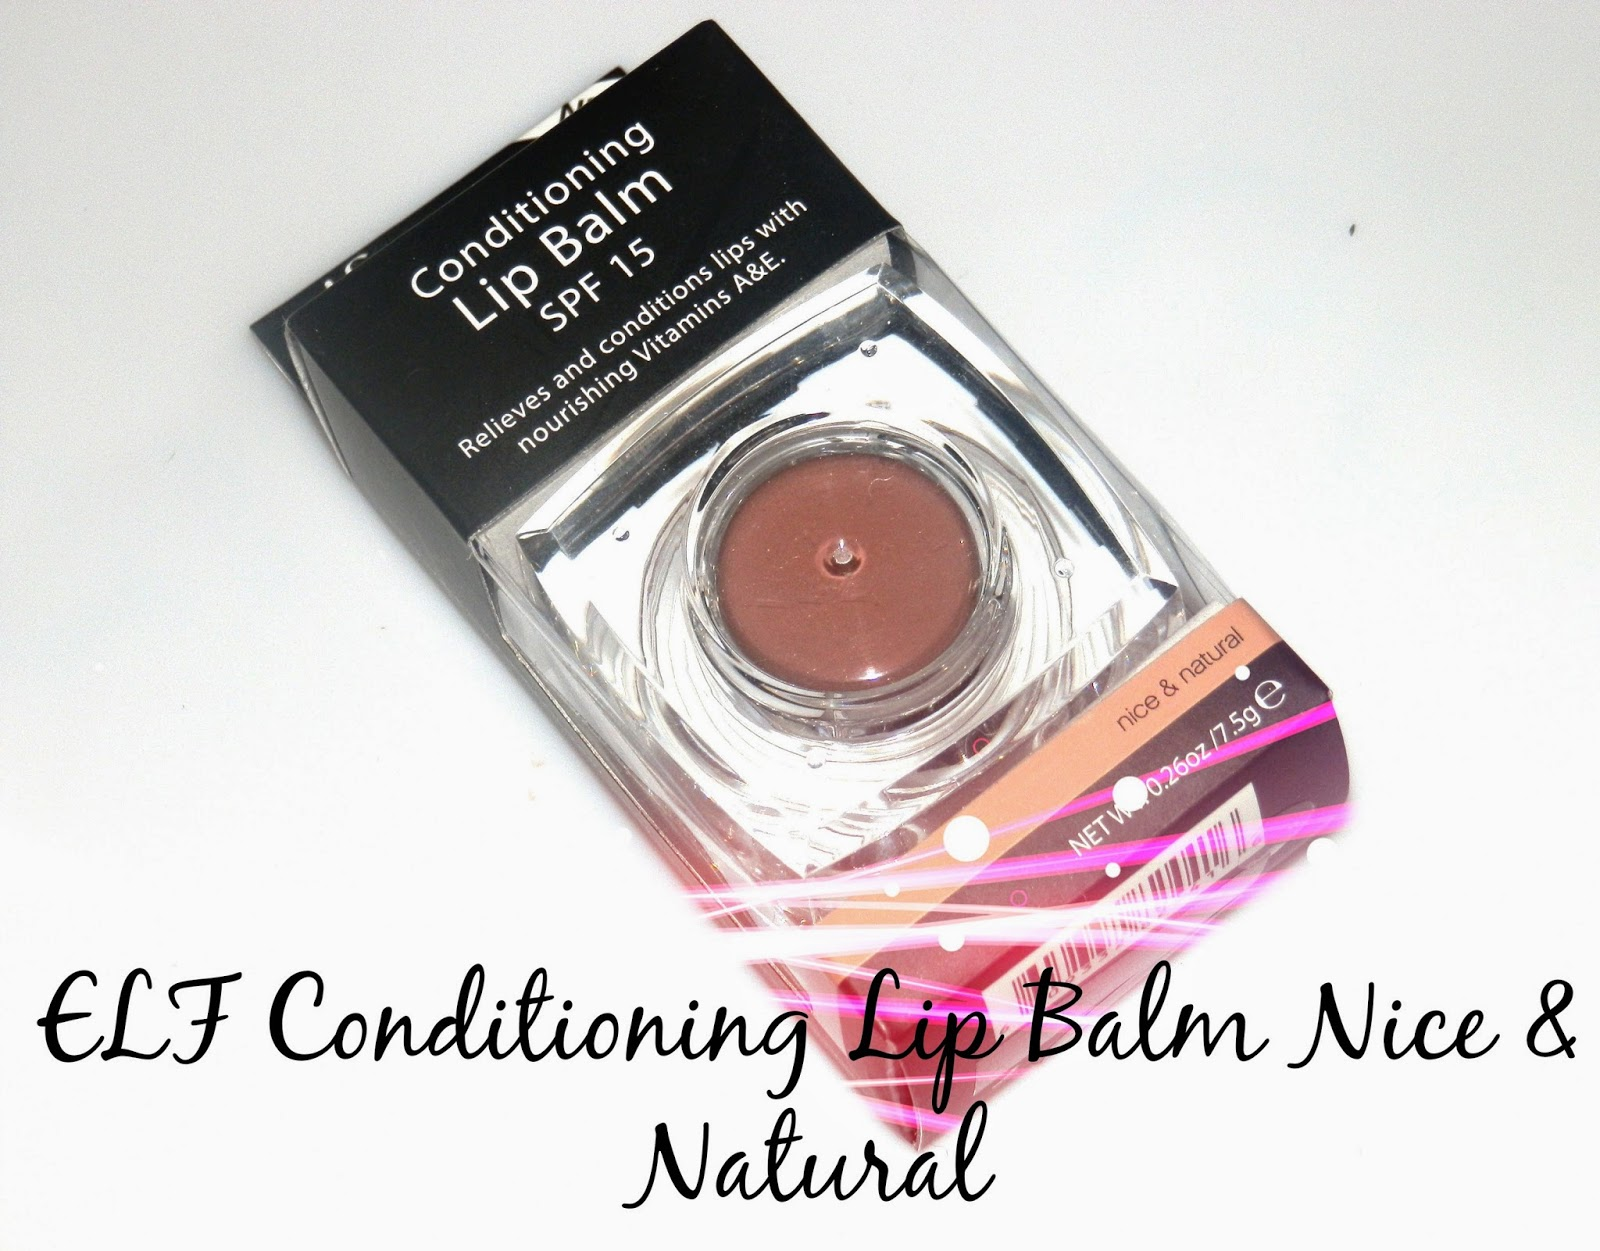 ELF Conditioning Lip Balm Nice & Natural Swatches